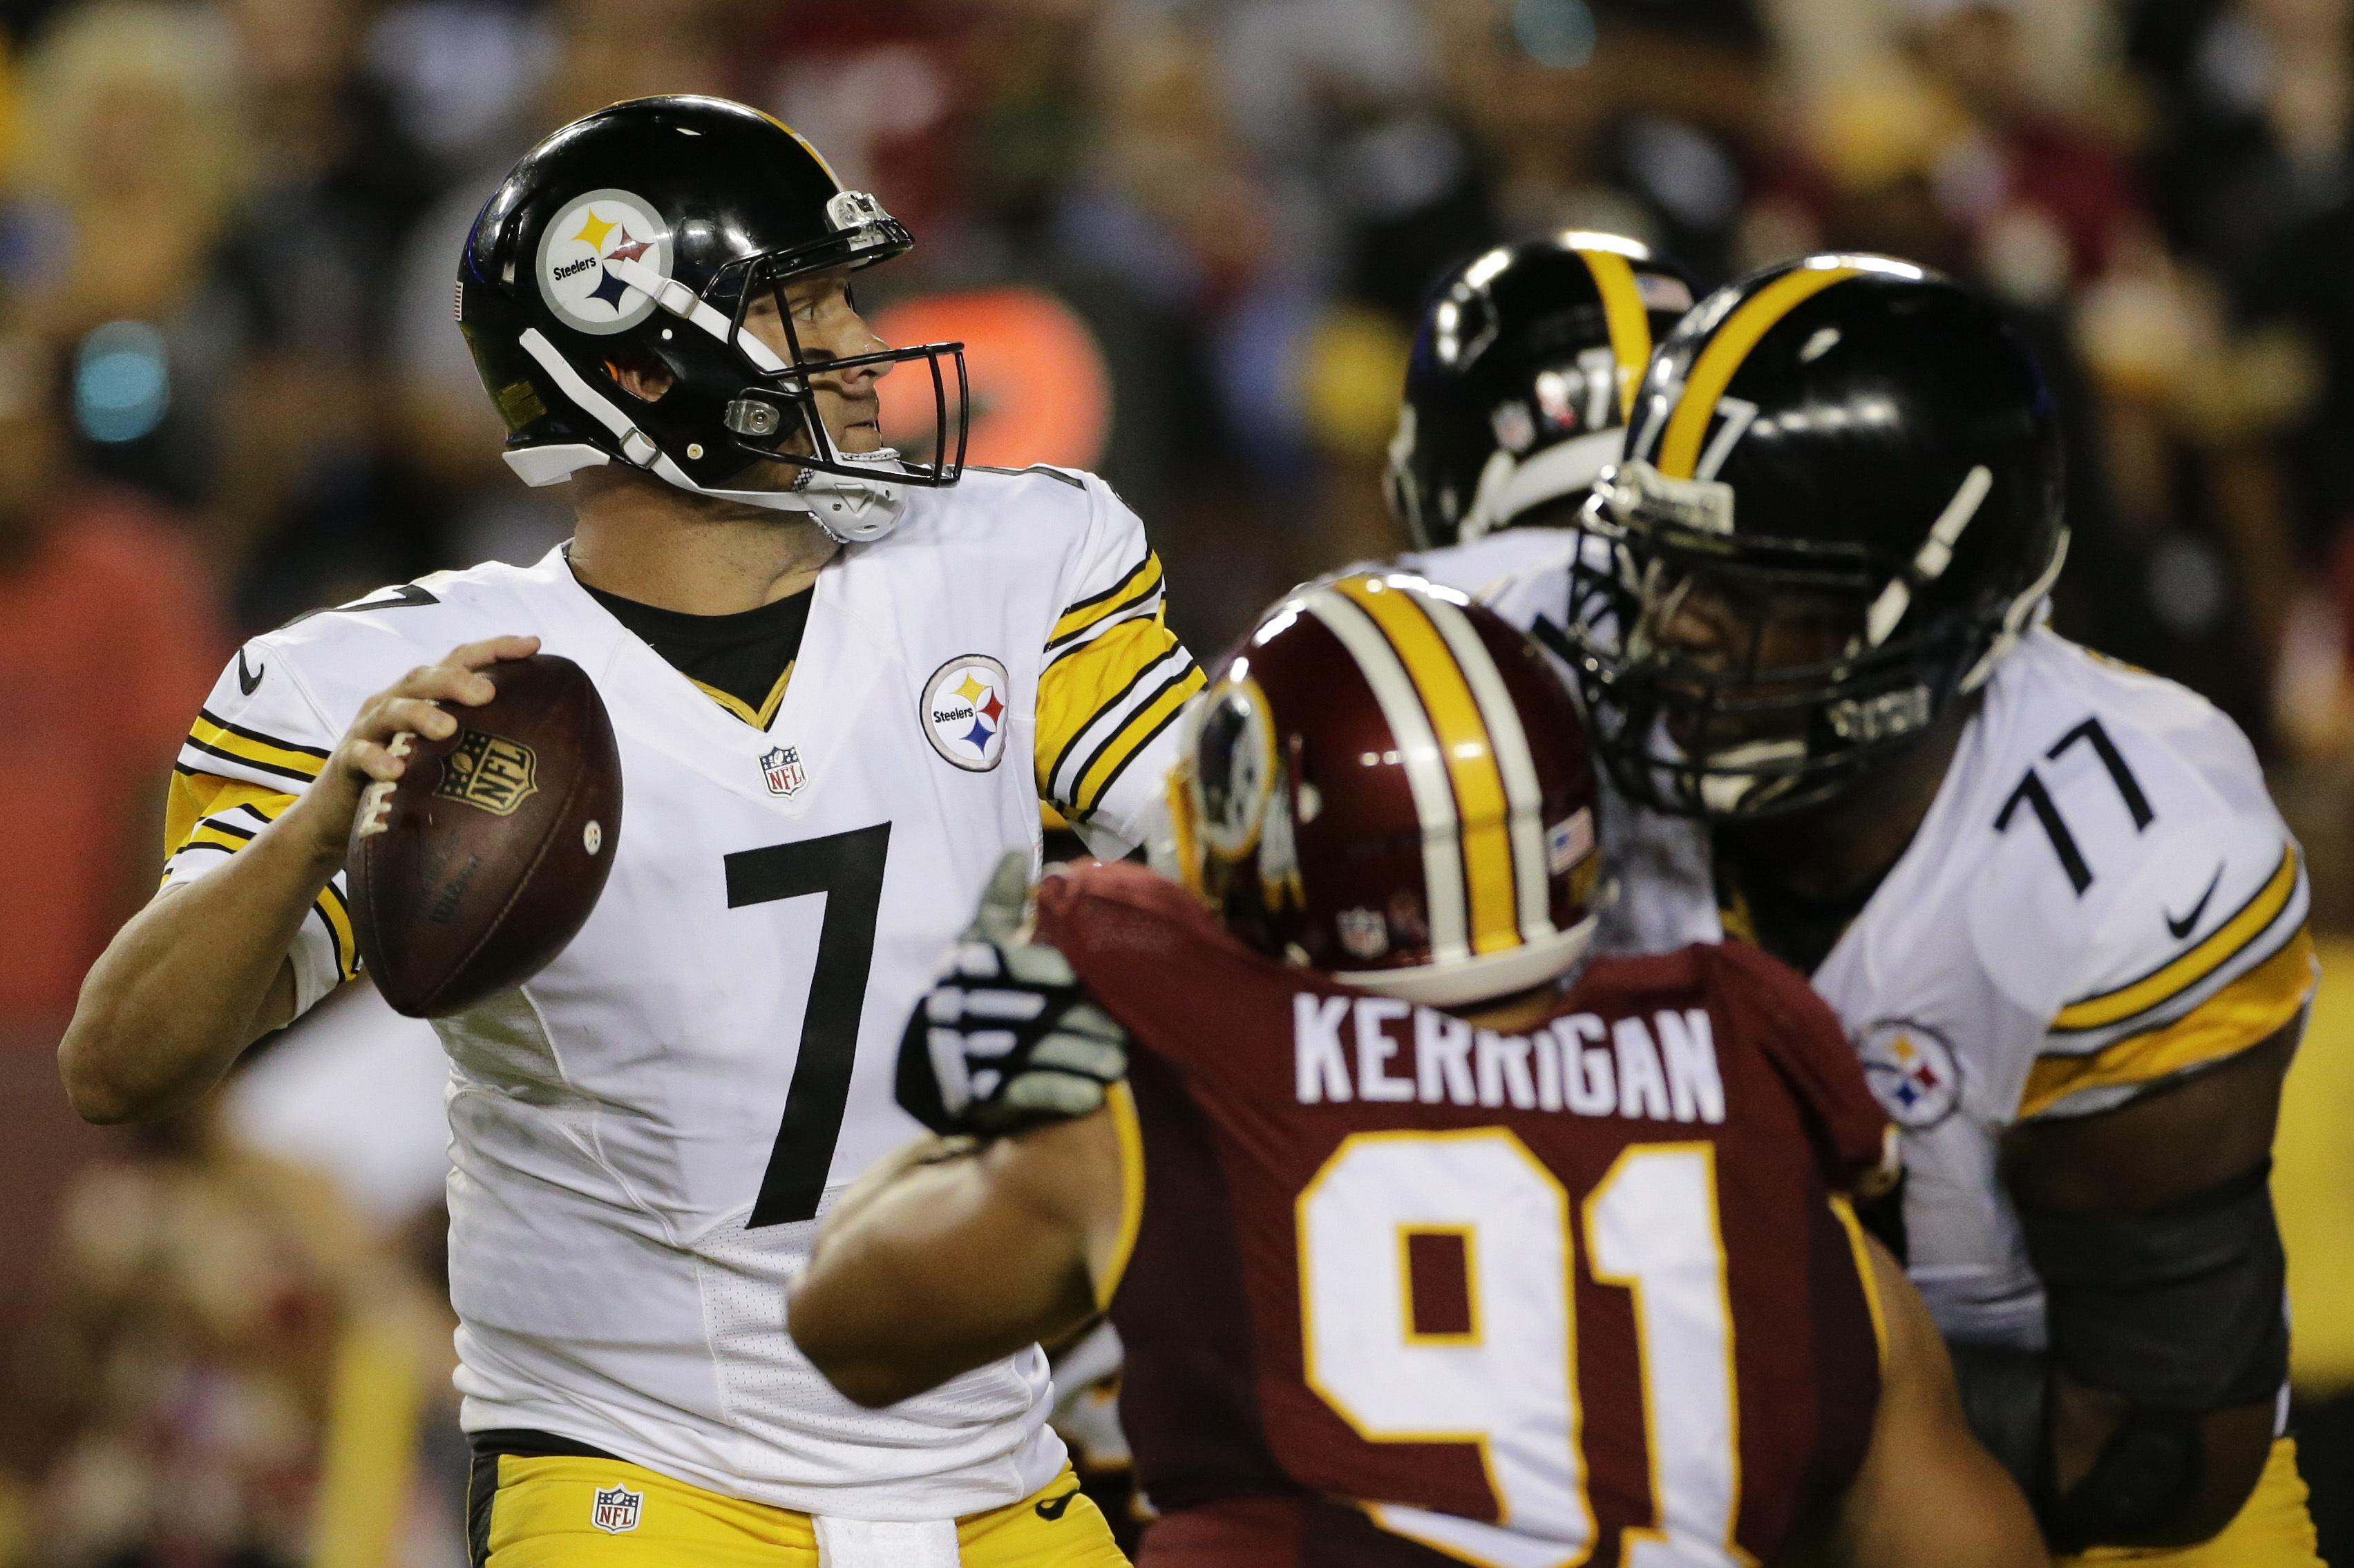 086d428d4dd Pittsburgh Steelers quarterback Ben Roethlisberger looks for an opening to  pass during the first half of